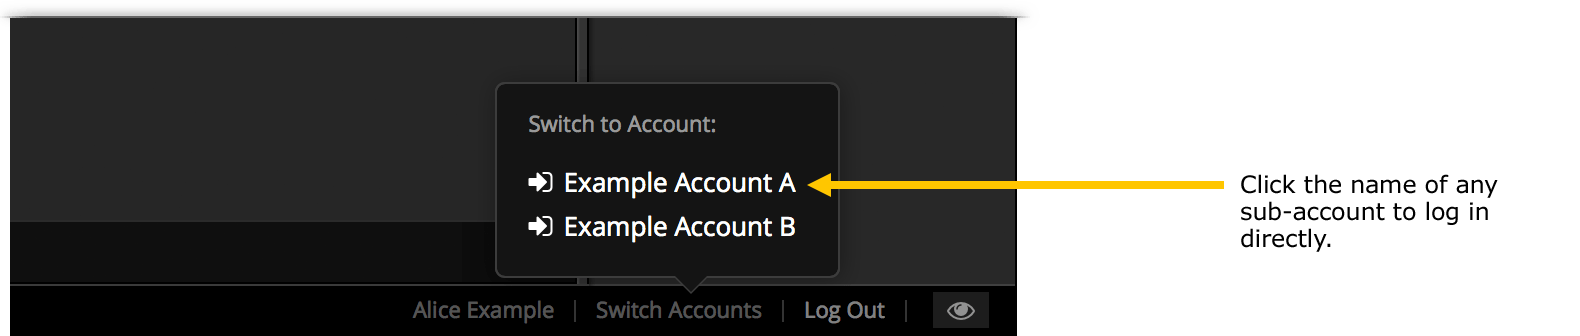 litdfs-account_switcher-ps.png